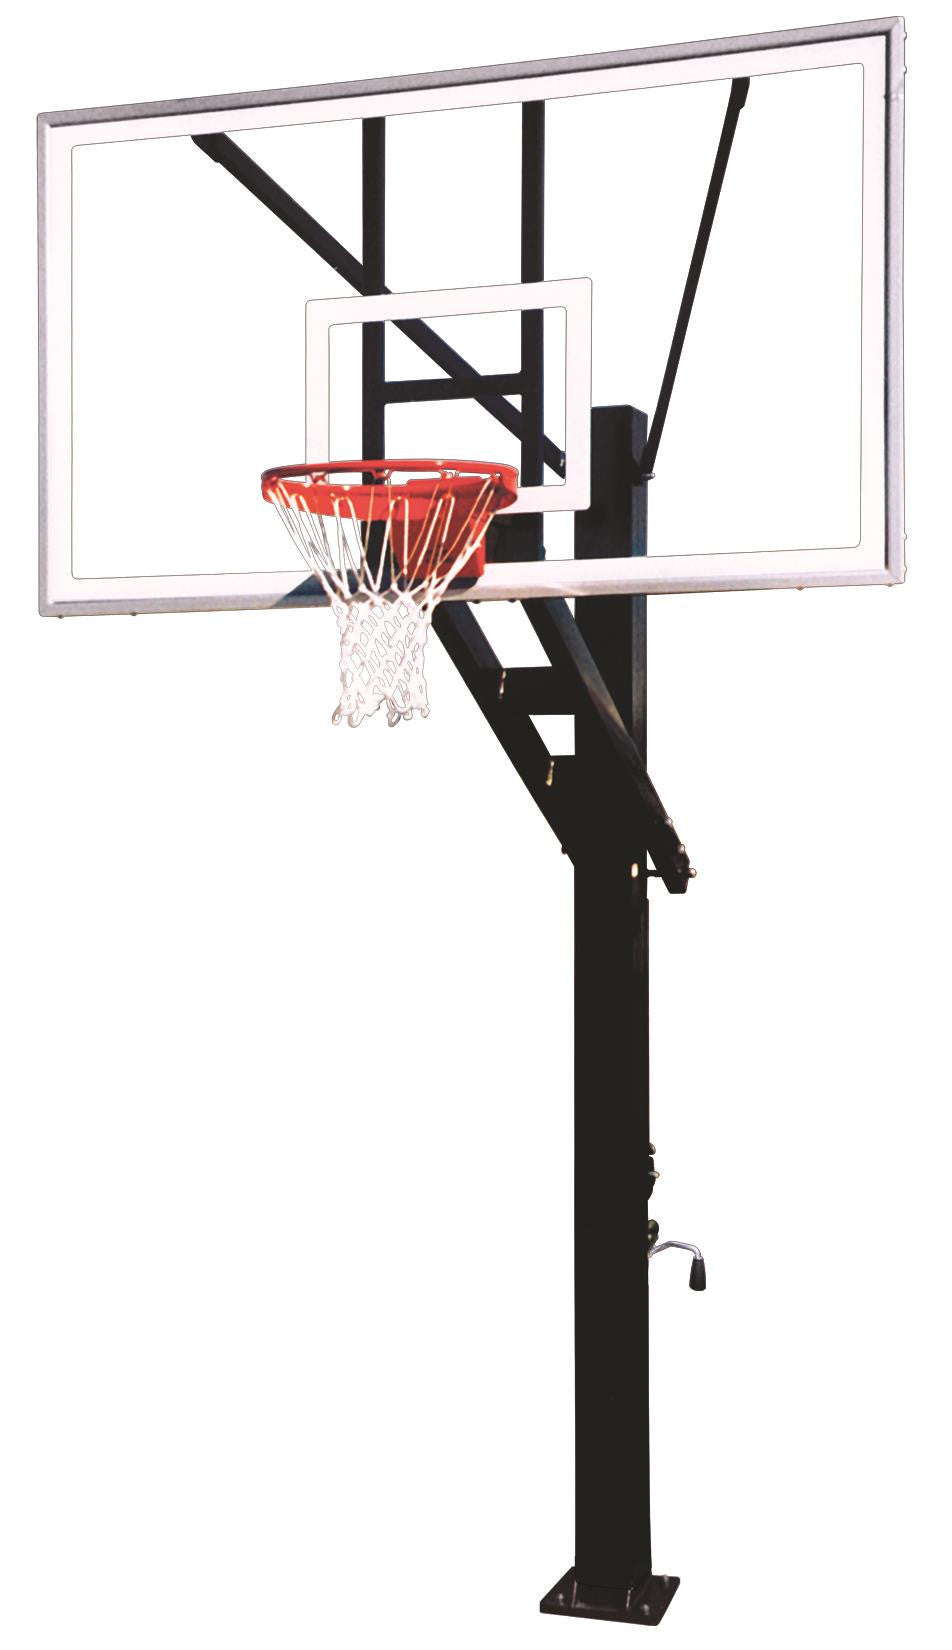 First Team Stainless Olympian Arena In Ground Adjustable Outdoor Basketball Hoop 72 inch Tempered Glass